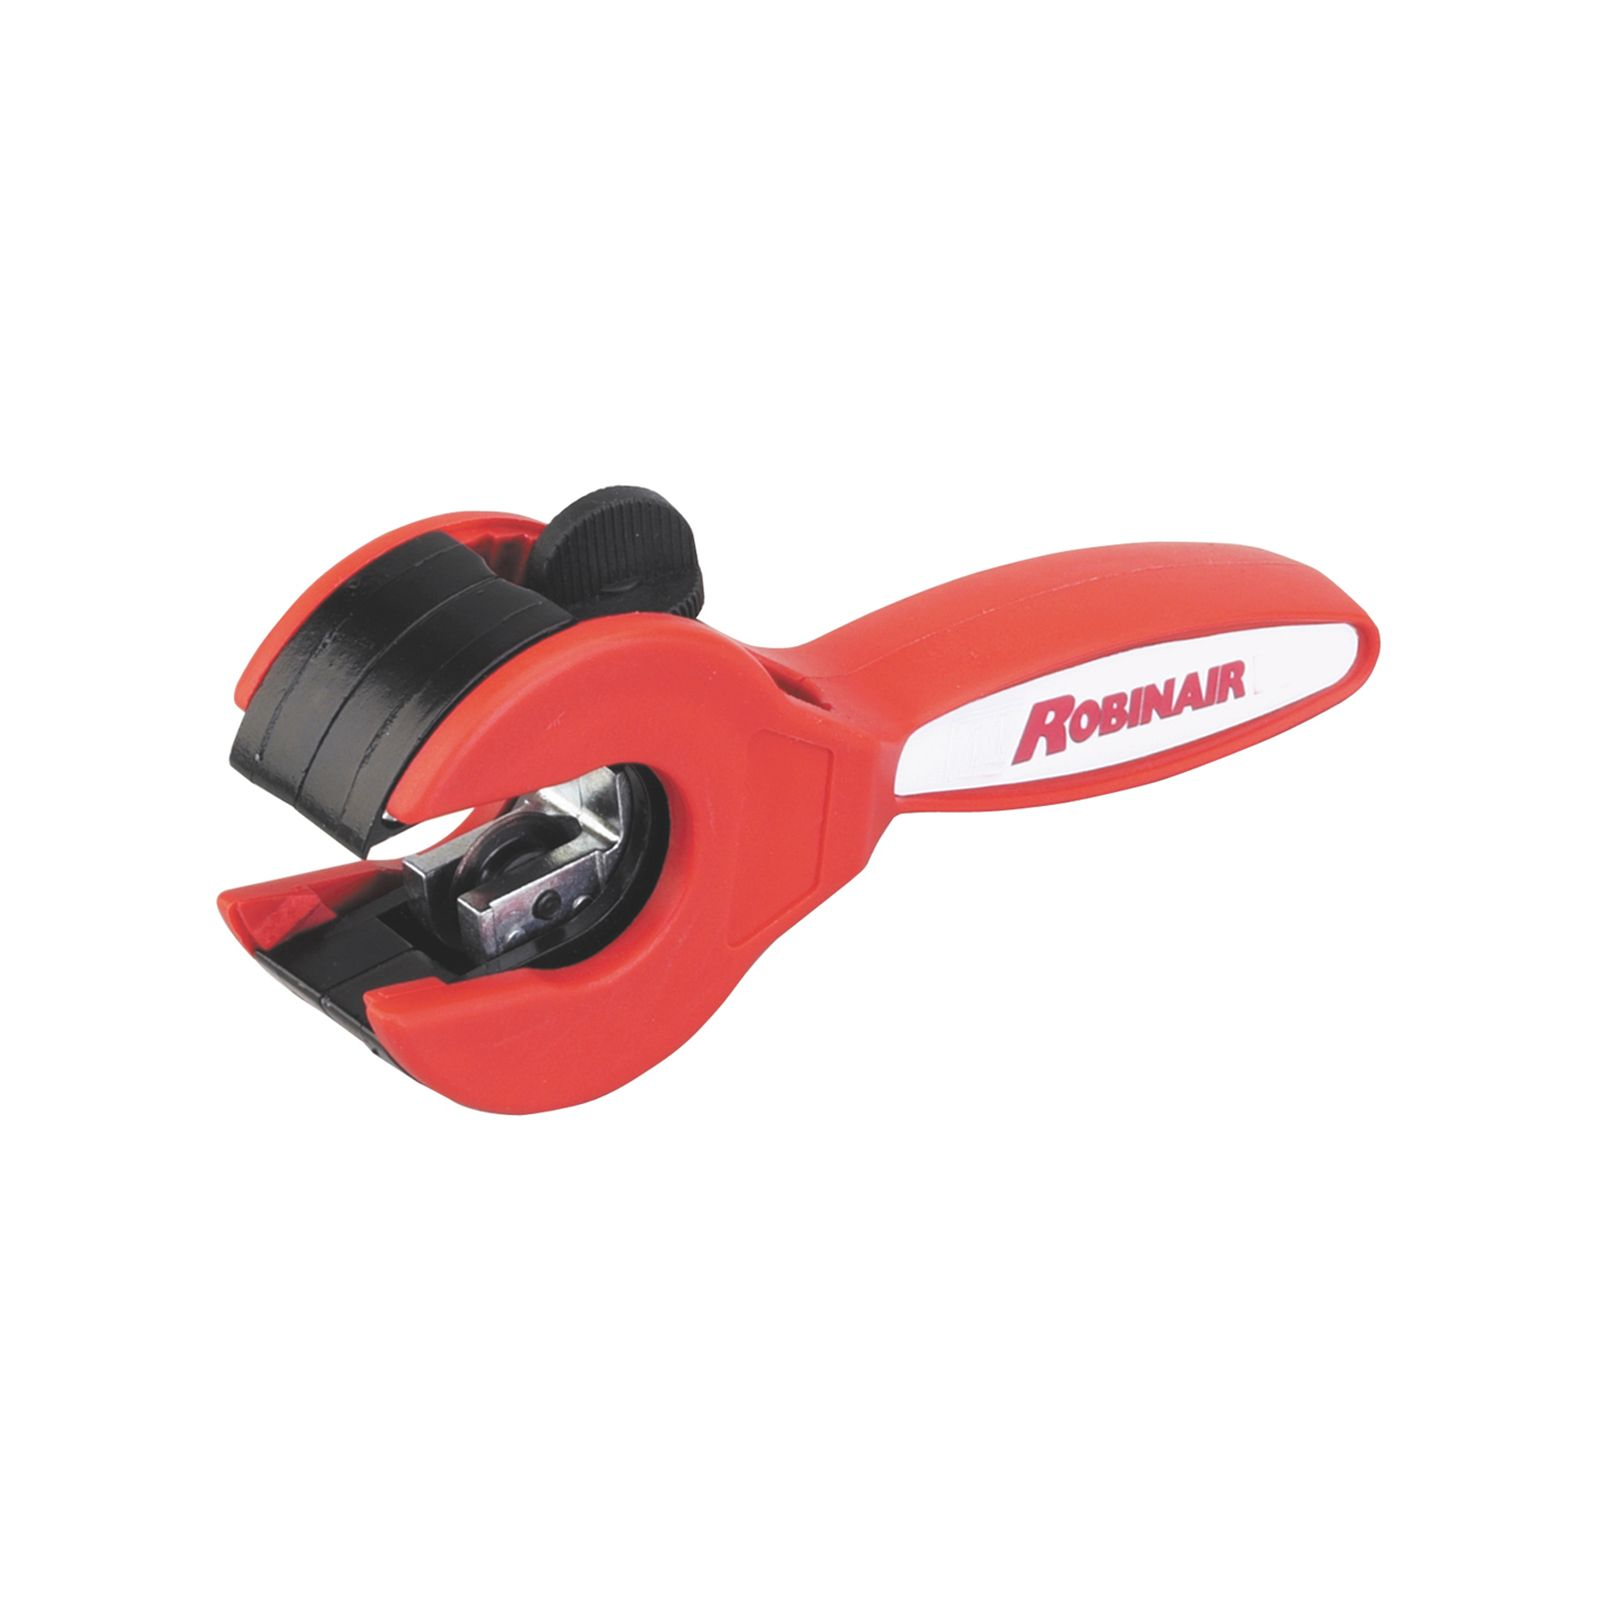 "SPX 42090 - Ratcheting Tubing Cutter For 1/4"" To 1-1/8"" Tubing."